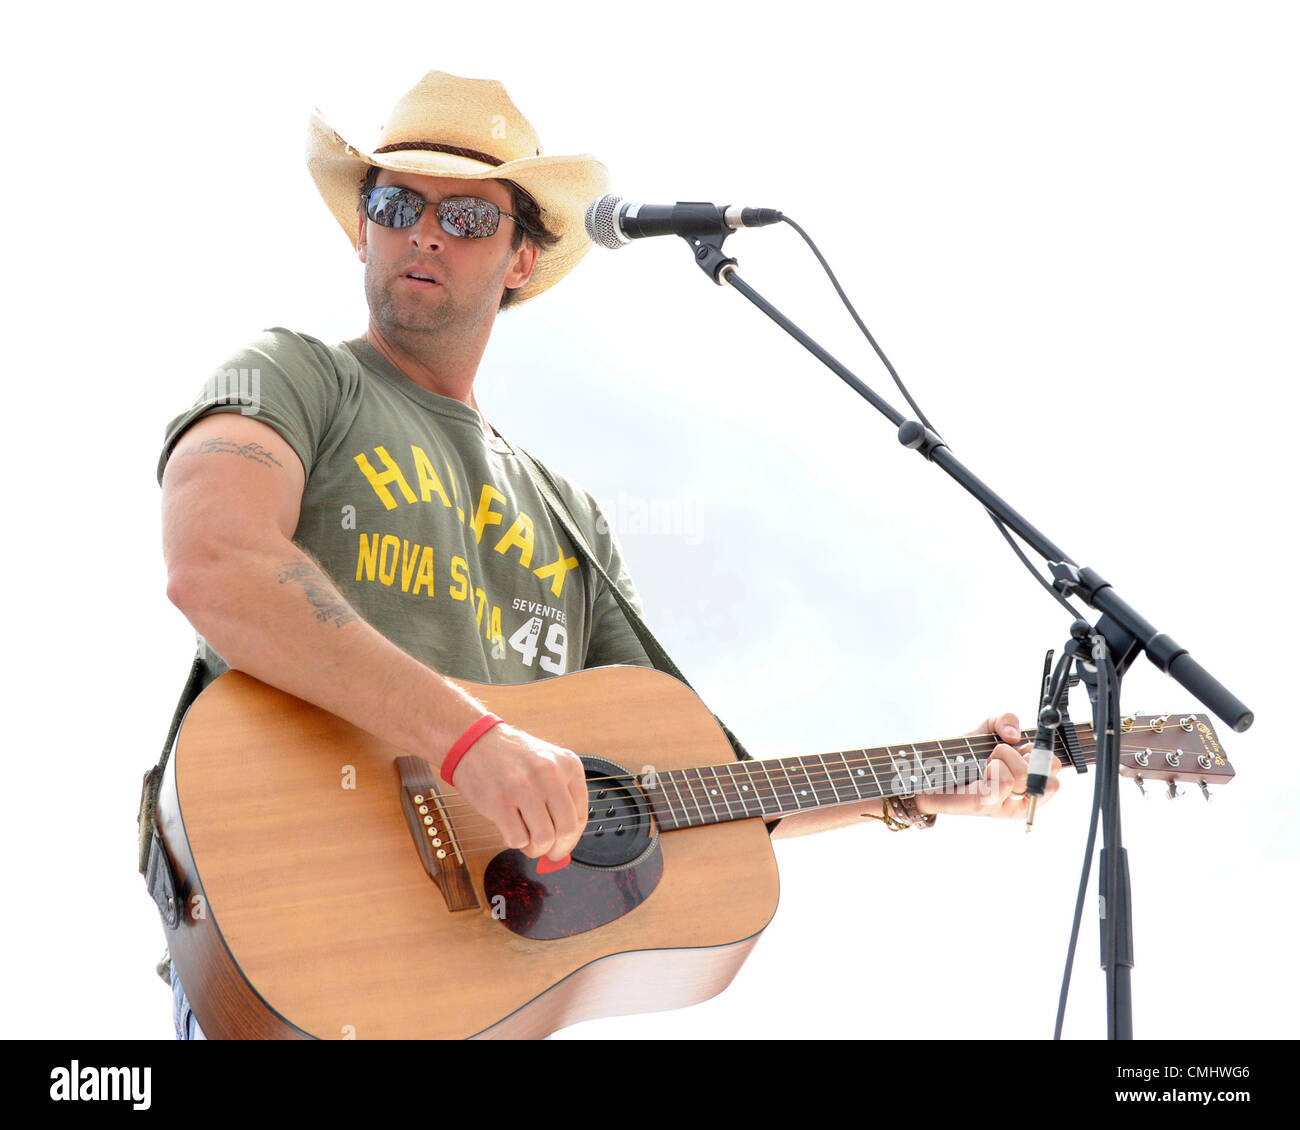 August 12, 2012 - Bowmanville, Ontario, Canada - Dean Brody surprise performance at the Boots and Heart Music Festival. - Stock Image